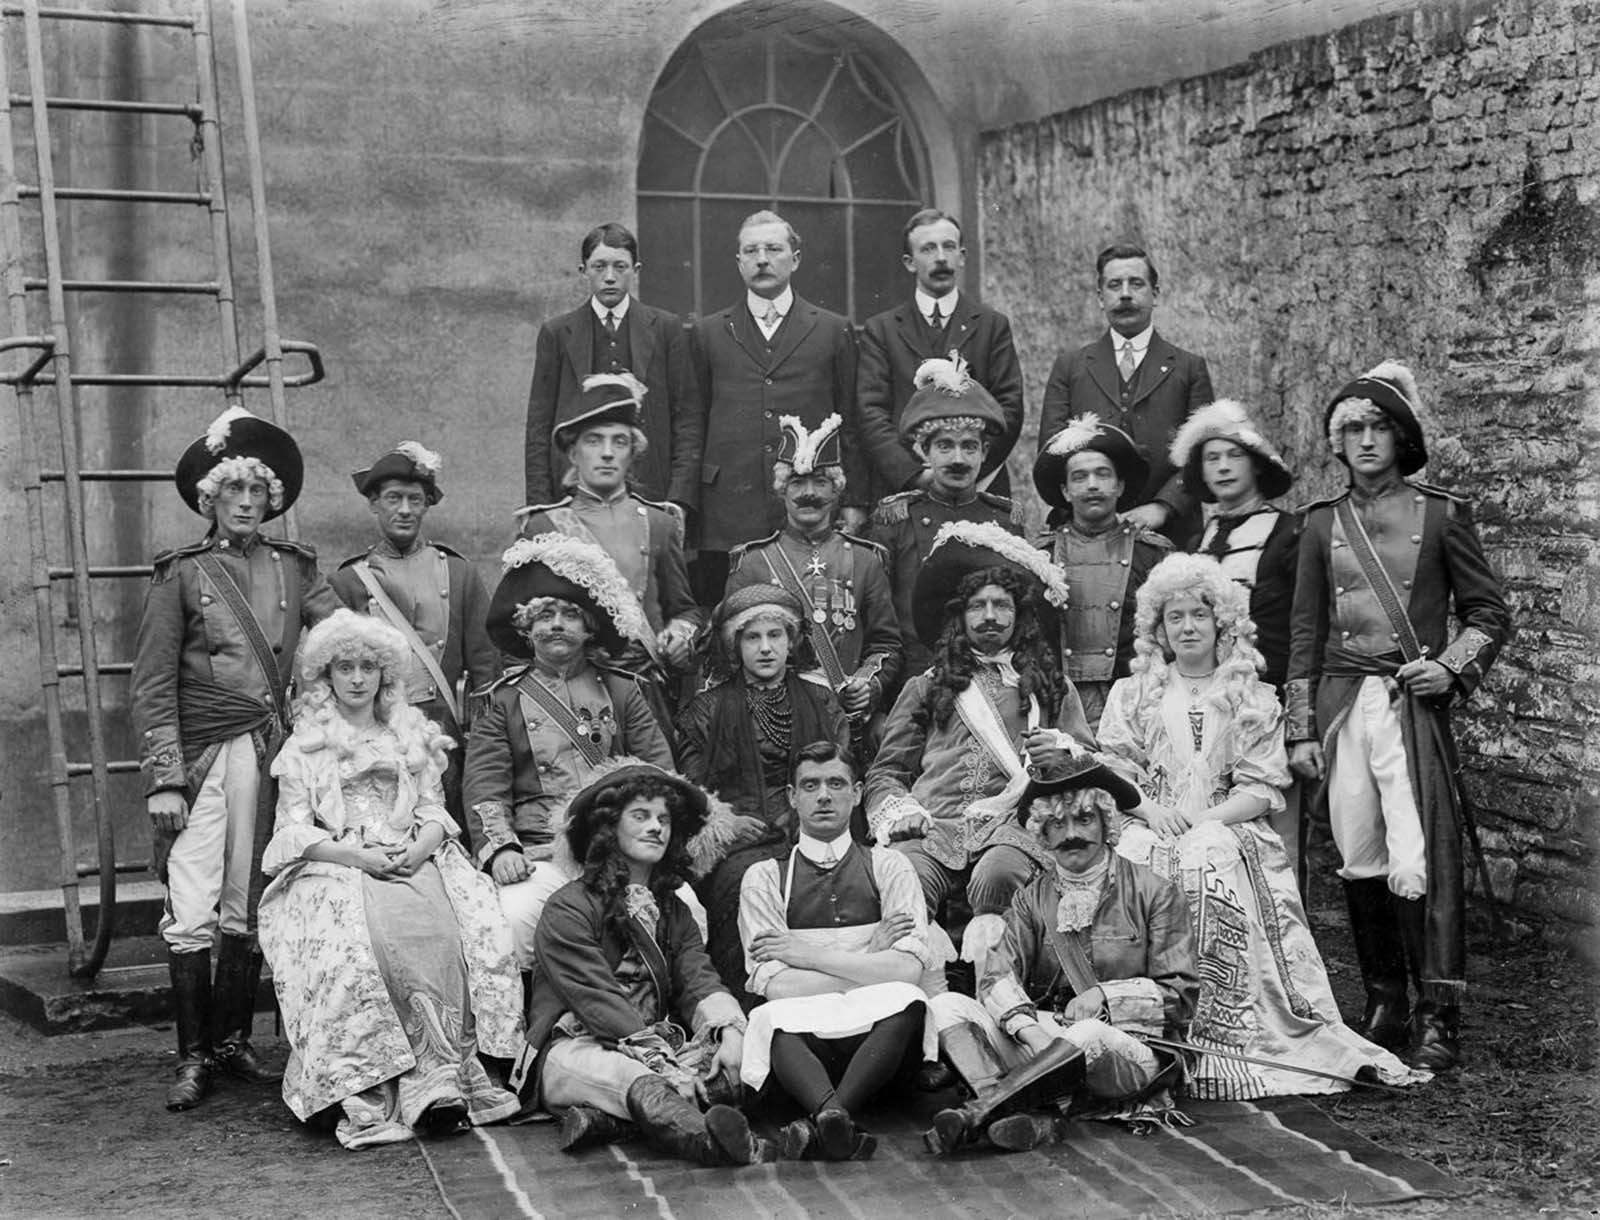 People in costume at the Theatre Royal in Waterford. 1914.